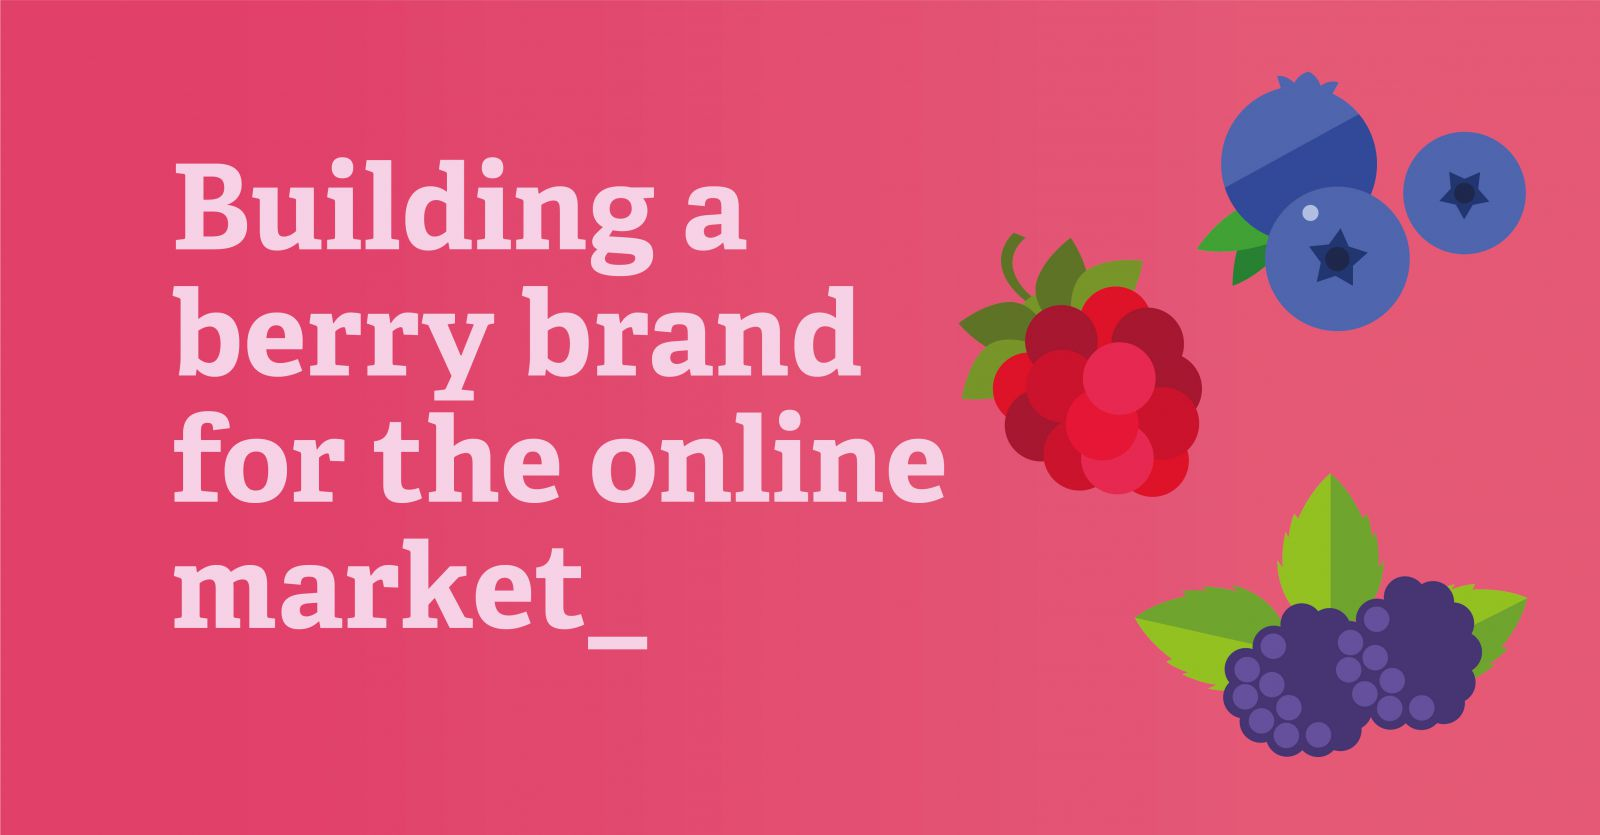 Building A Berry Brand For The Online Market